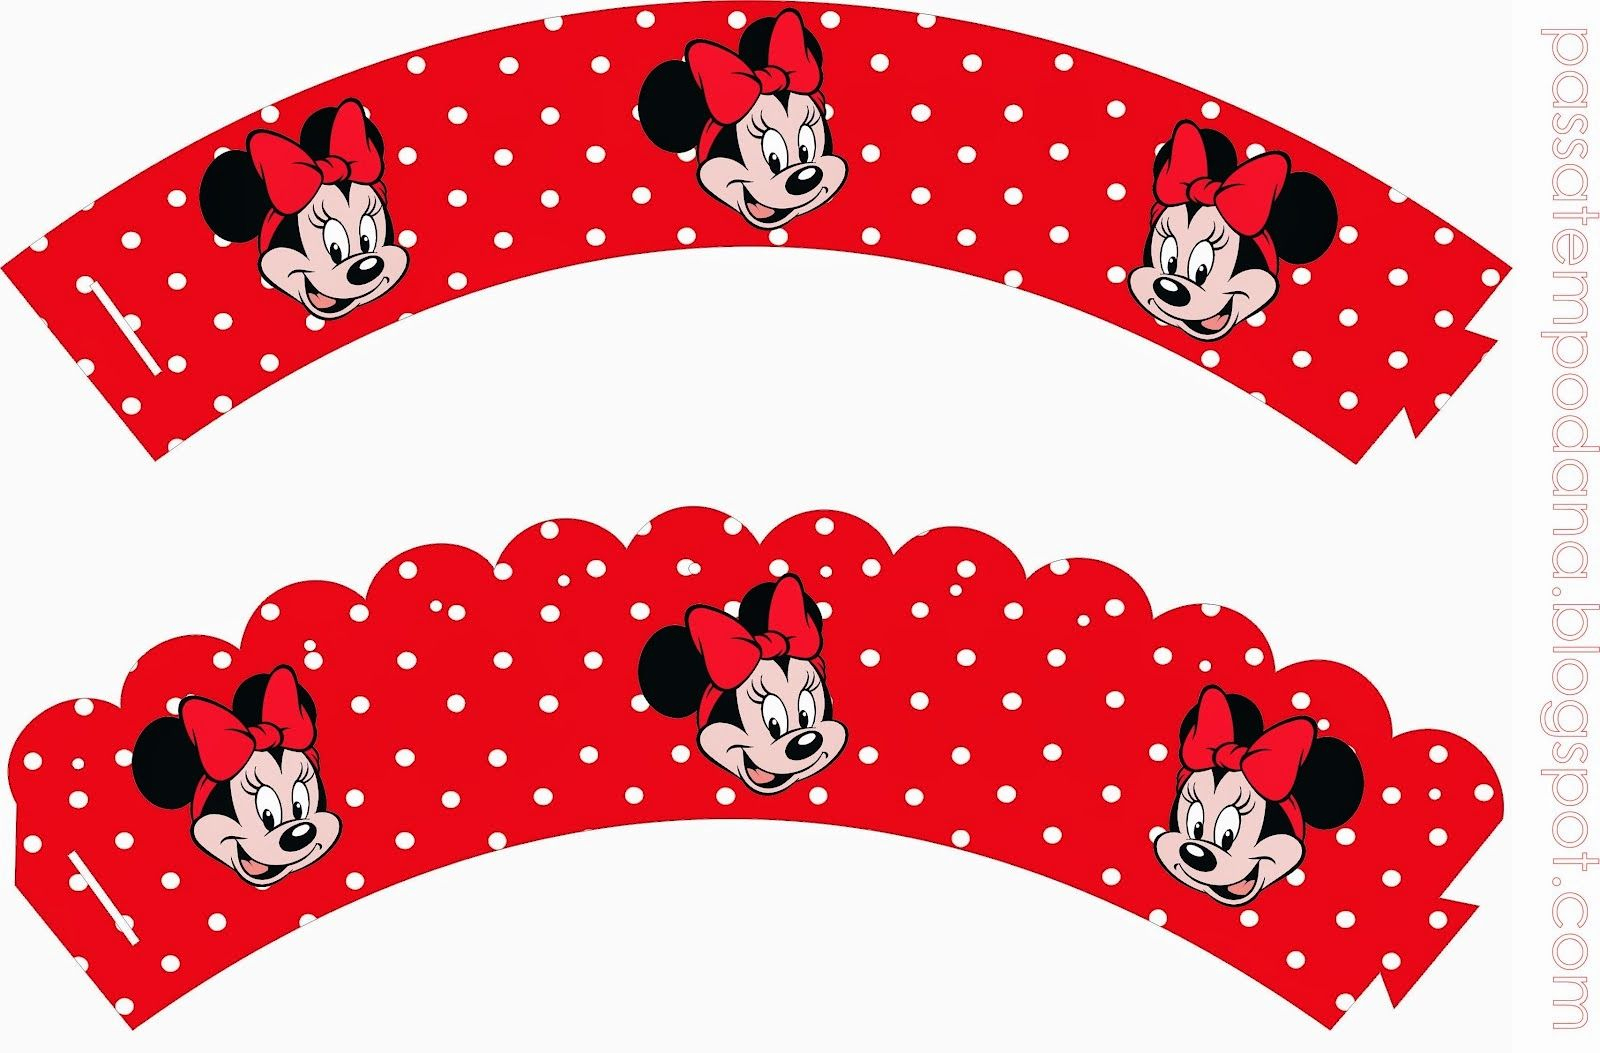 Free Printable Cupcake Wrappers.   Fiesta Minnie Mouse   Pinterest - Free Printable Minnie Mouse Cupcake Wrappers